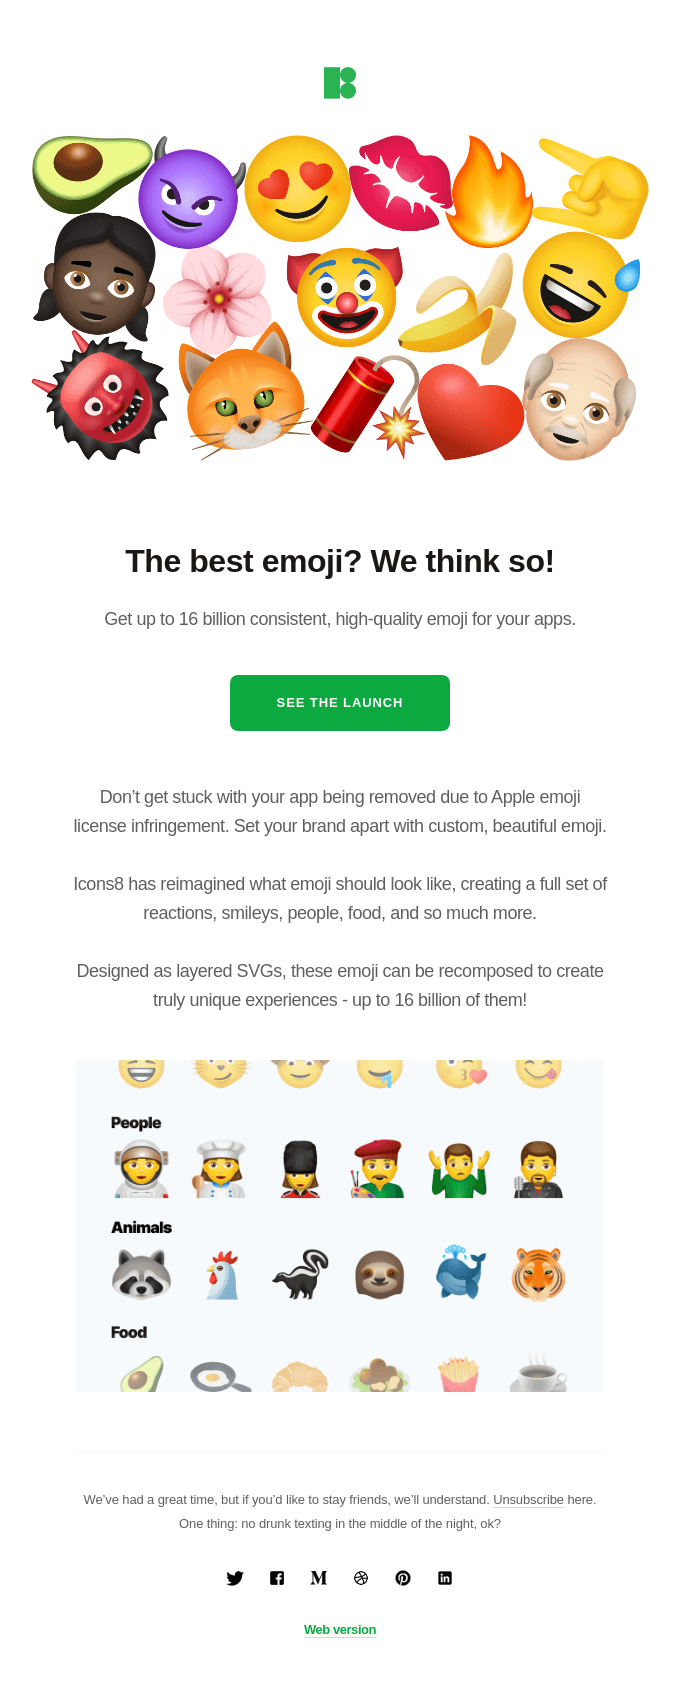 Beautiful and legal emoji have finally arrived!